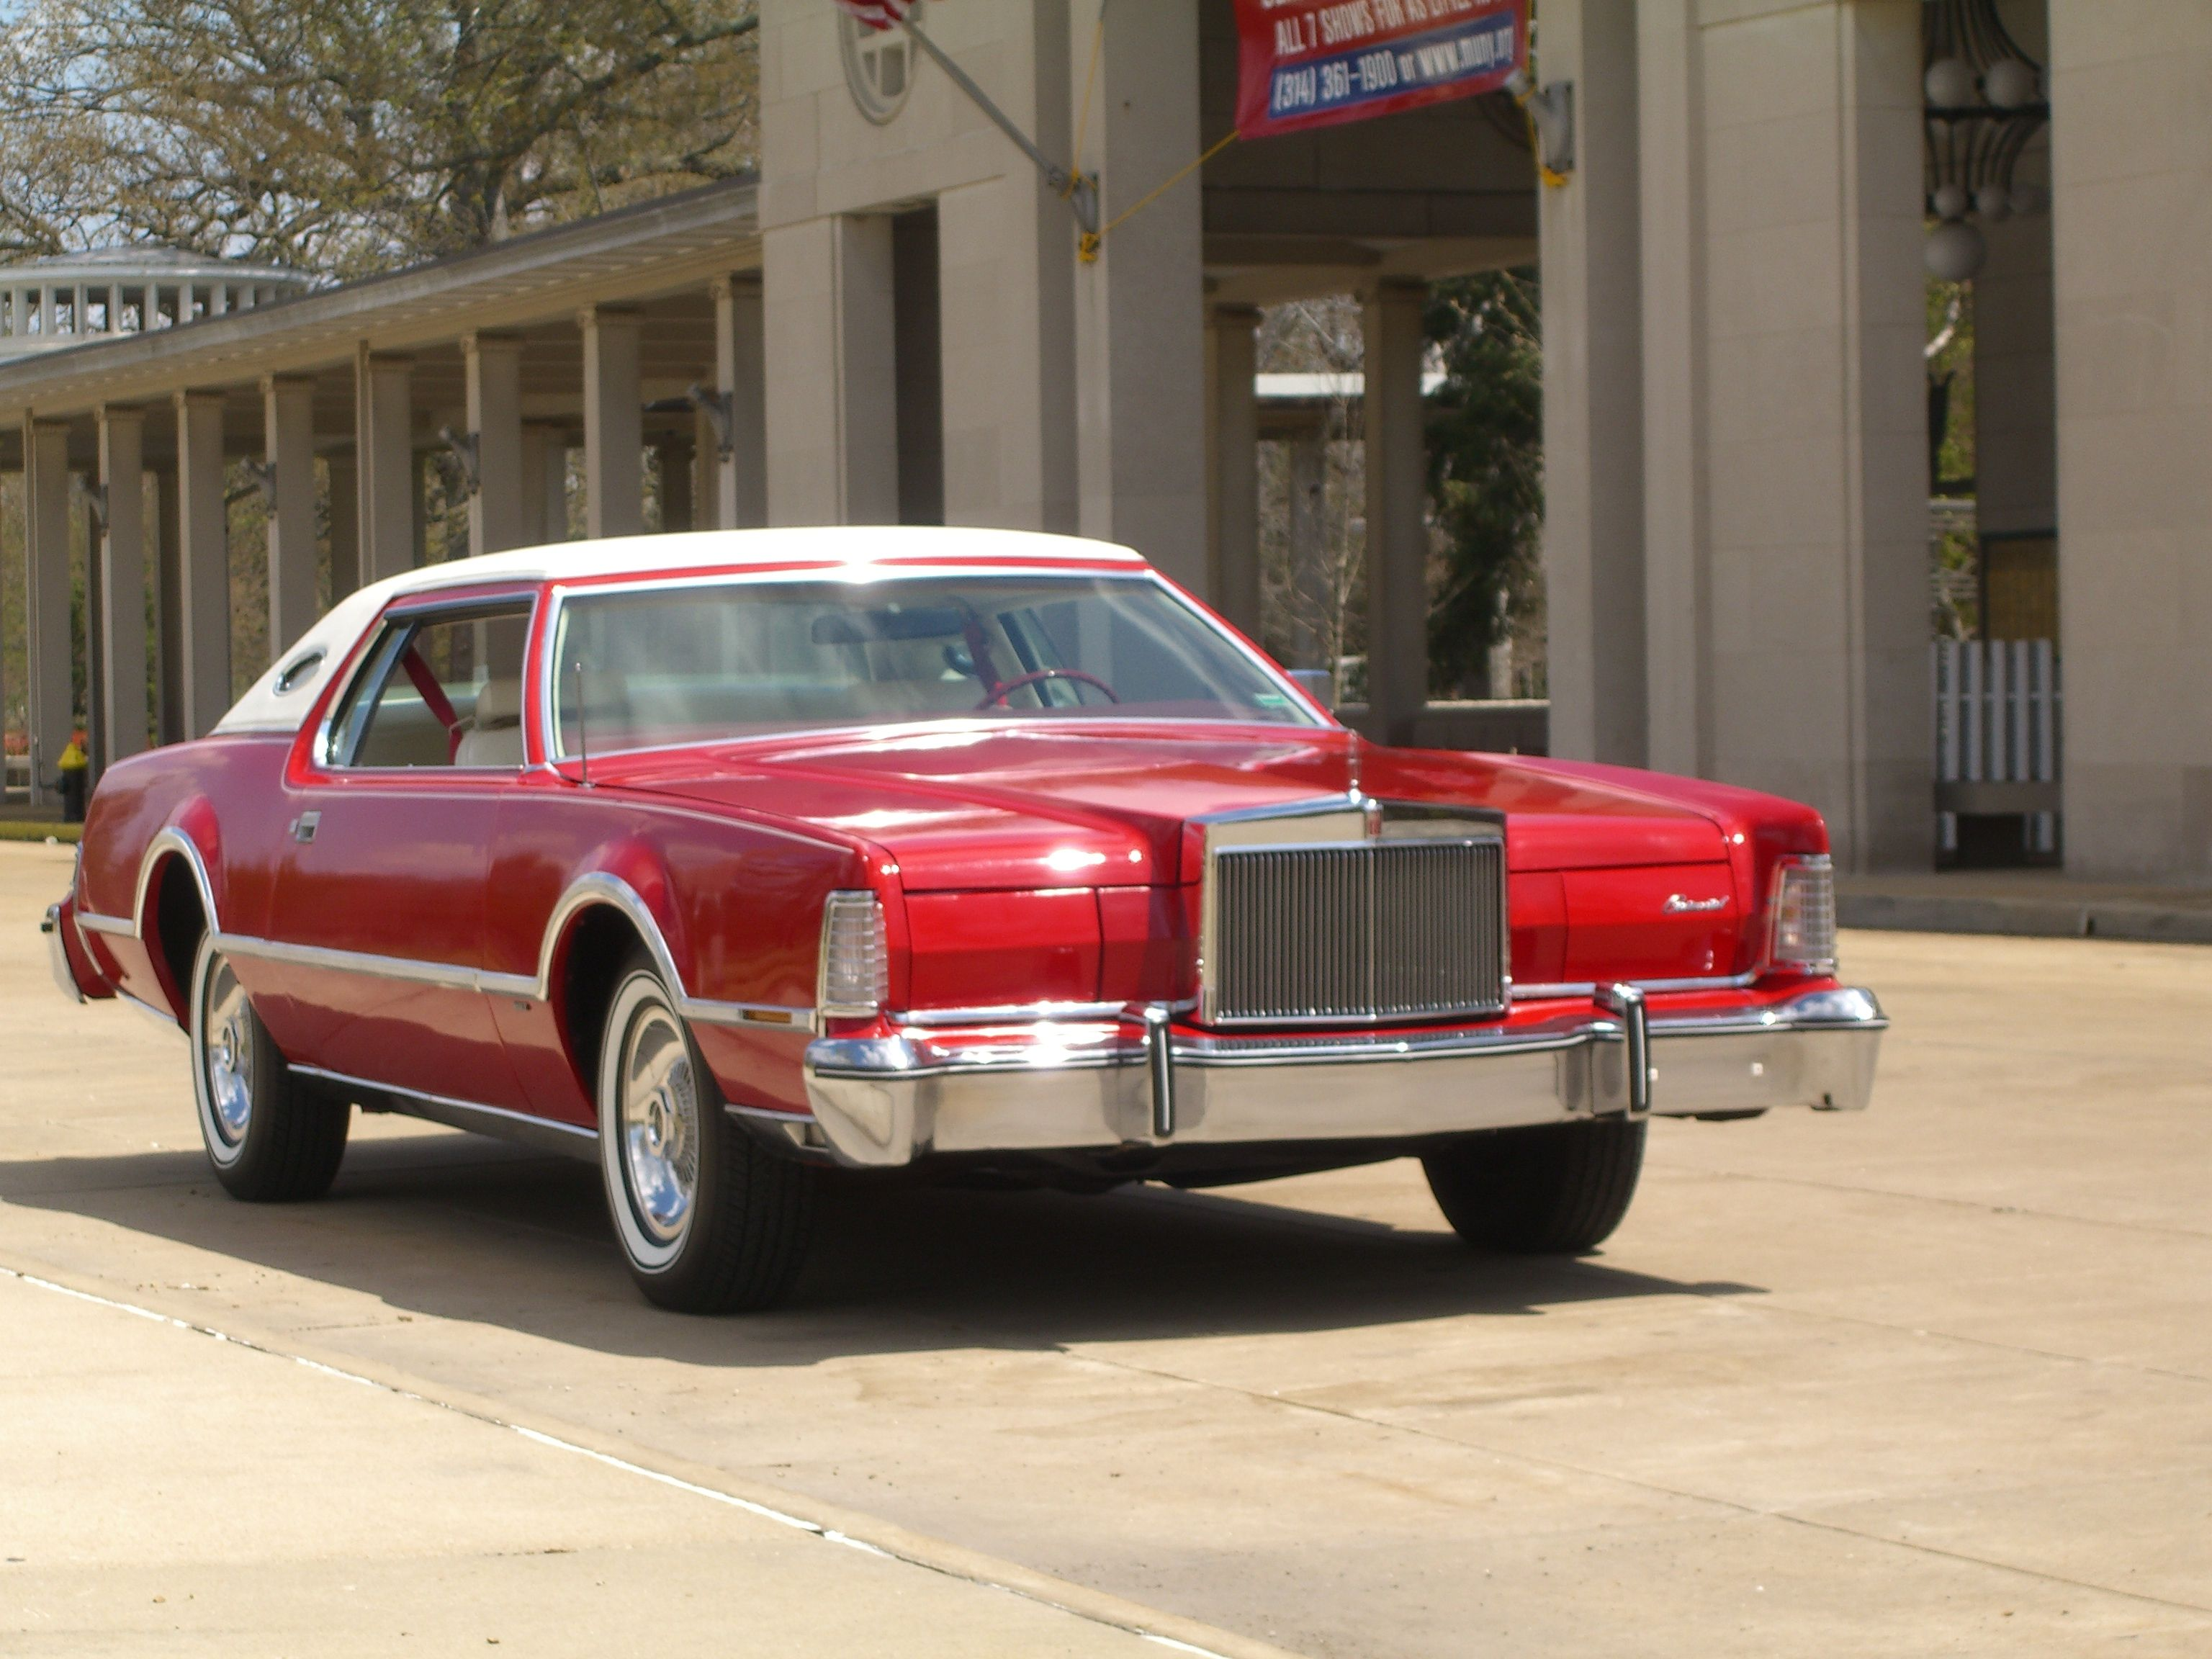 1976 lincoln continental mark iv lipstick designers series 5100000 miles